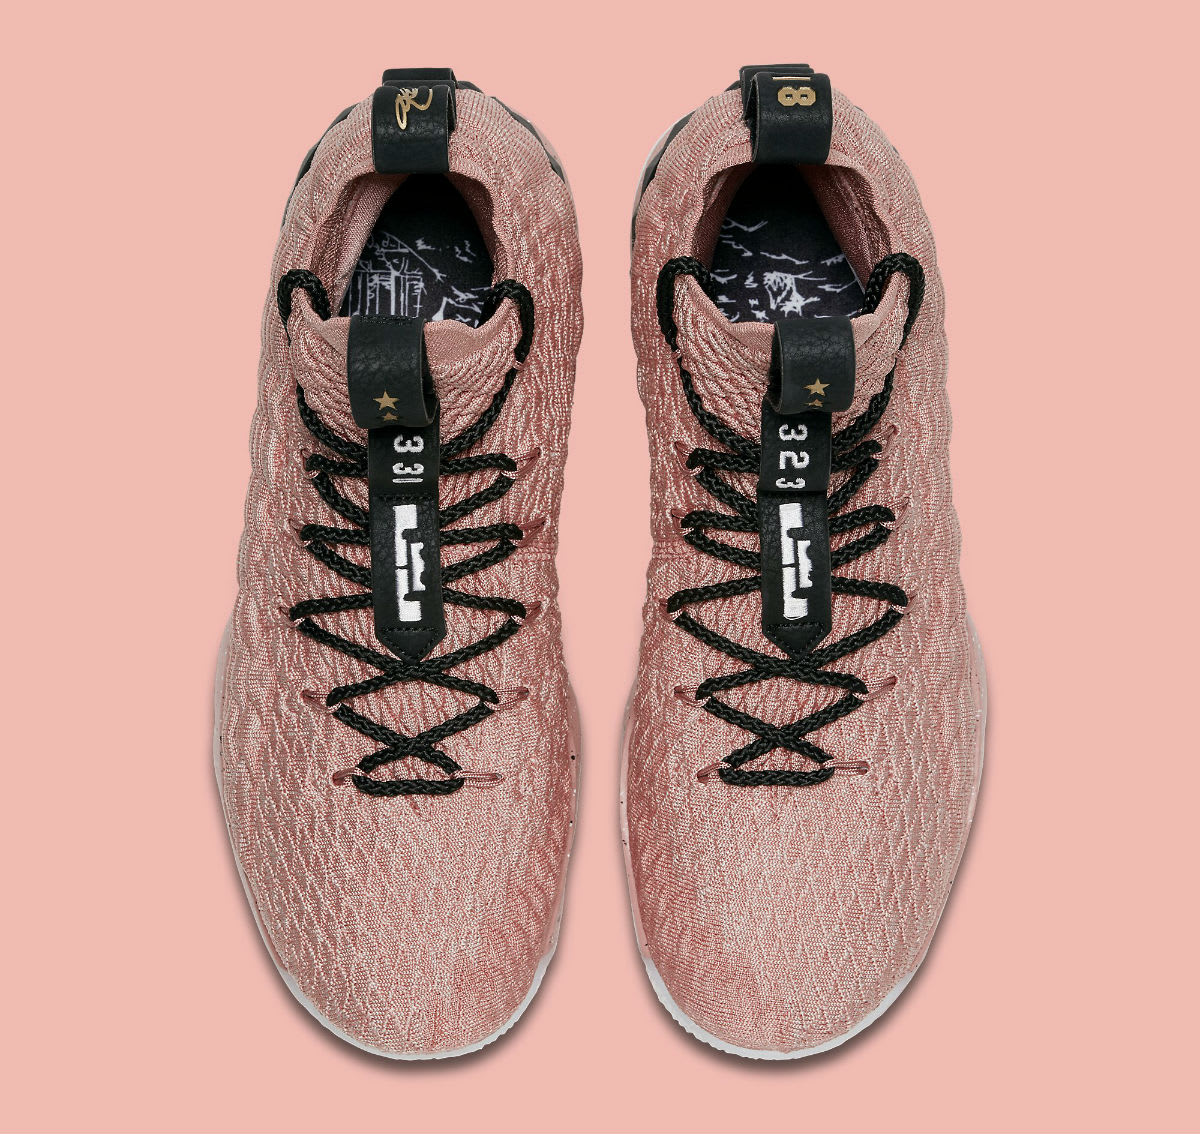 Nike LeBron 15 All-Star Pink Release Date 897650-600 Top